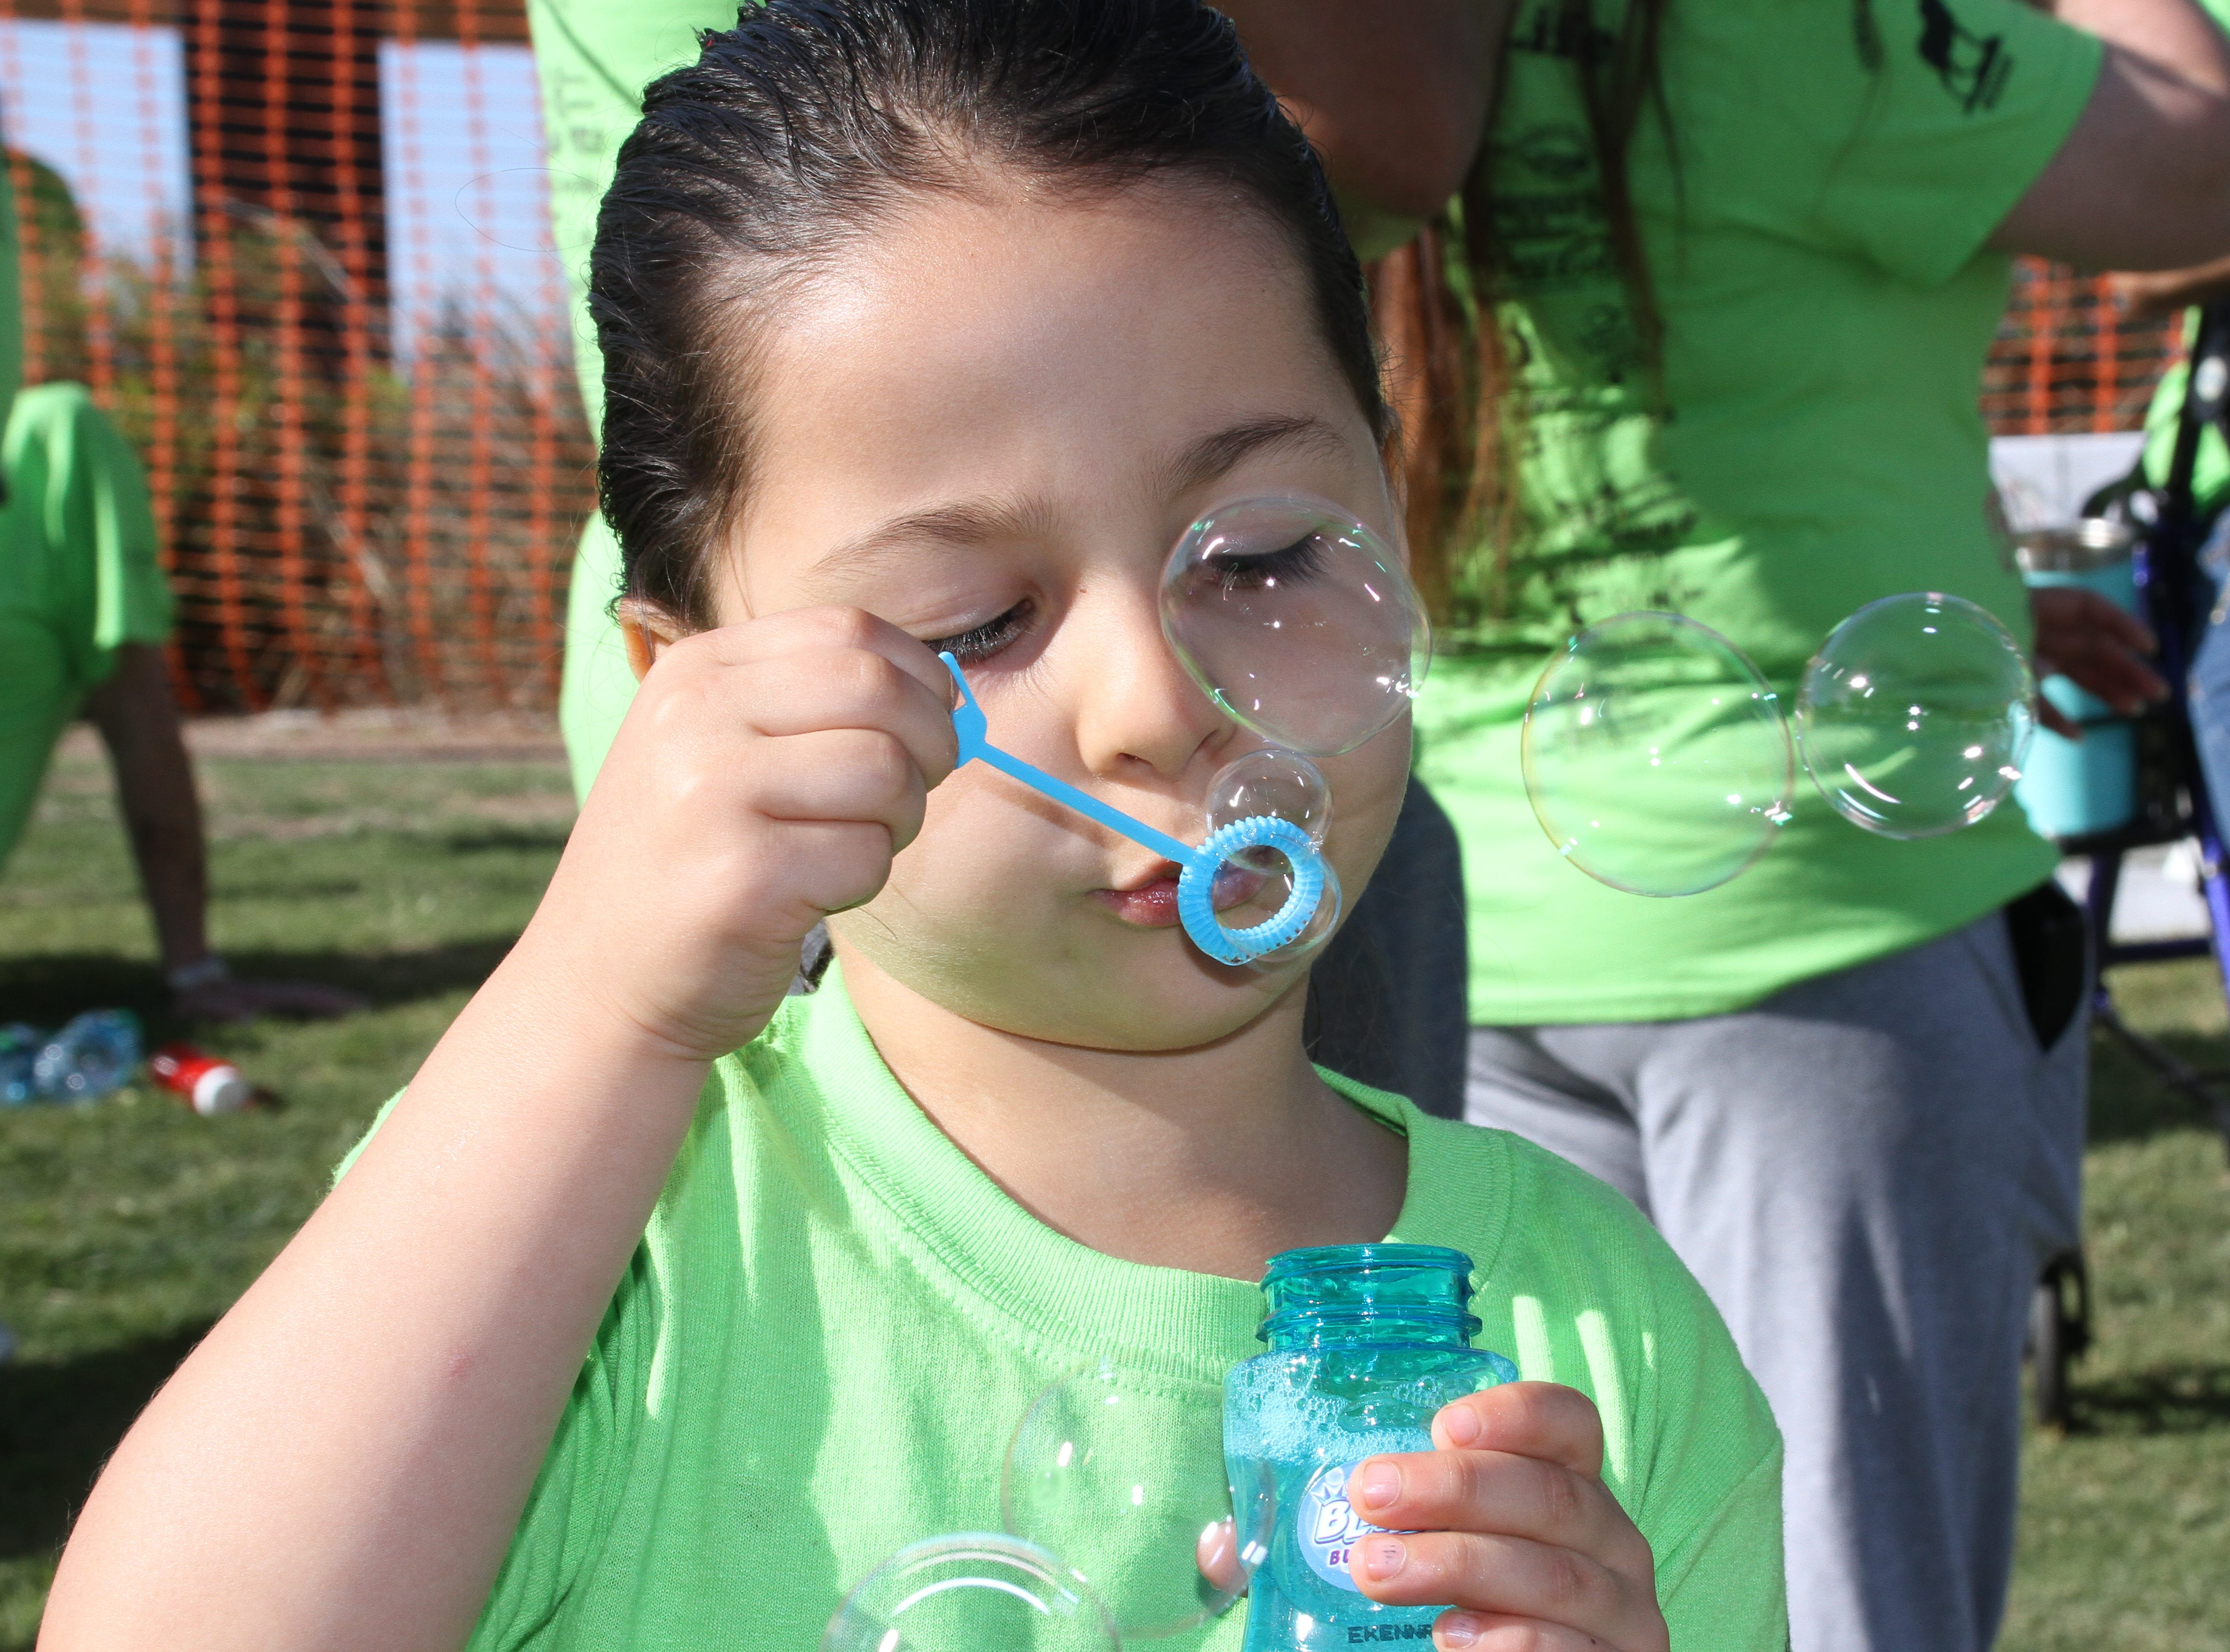 Four-year-old Natalia Rivera blowing bubbles.